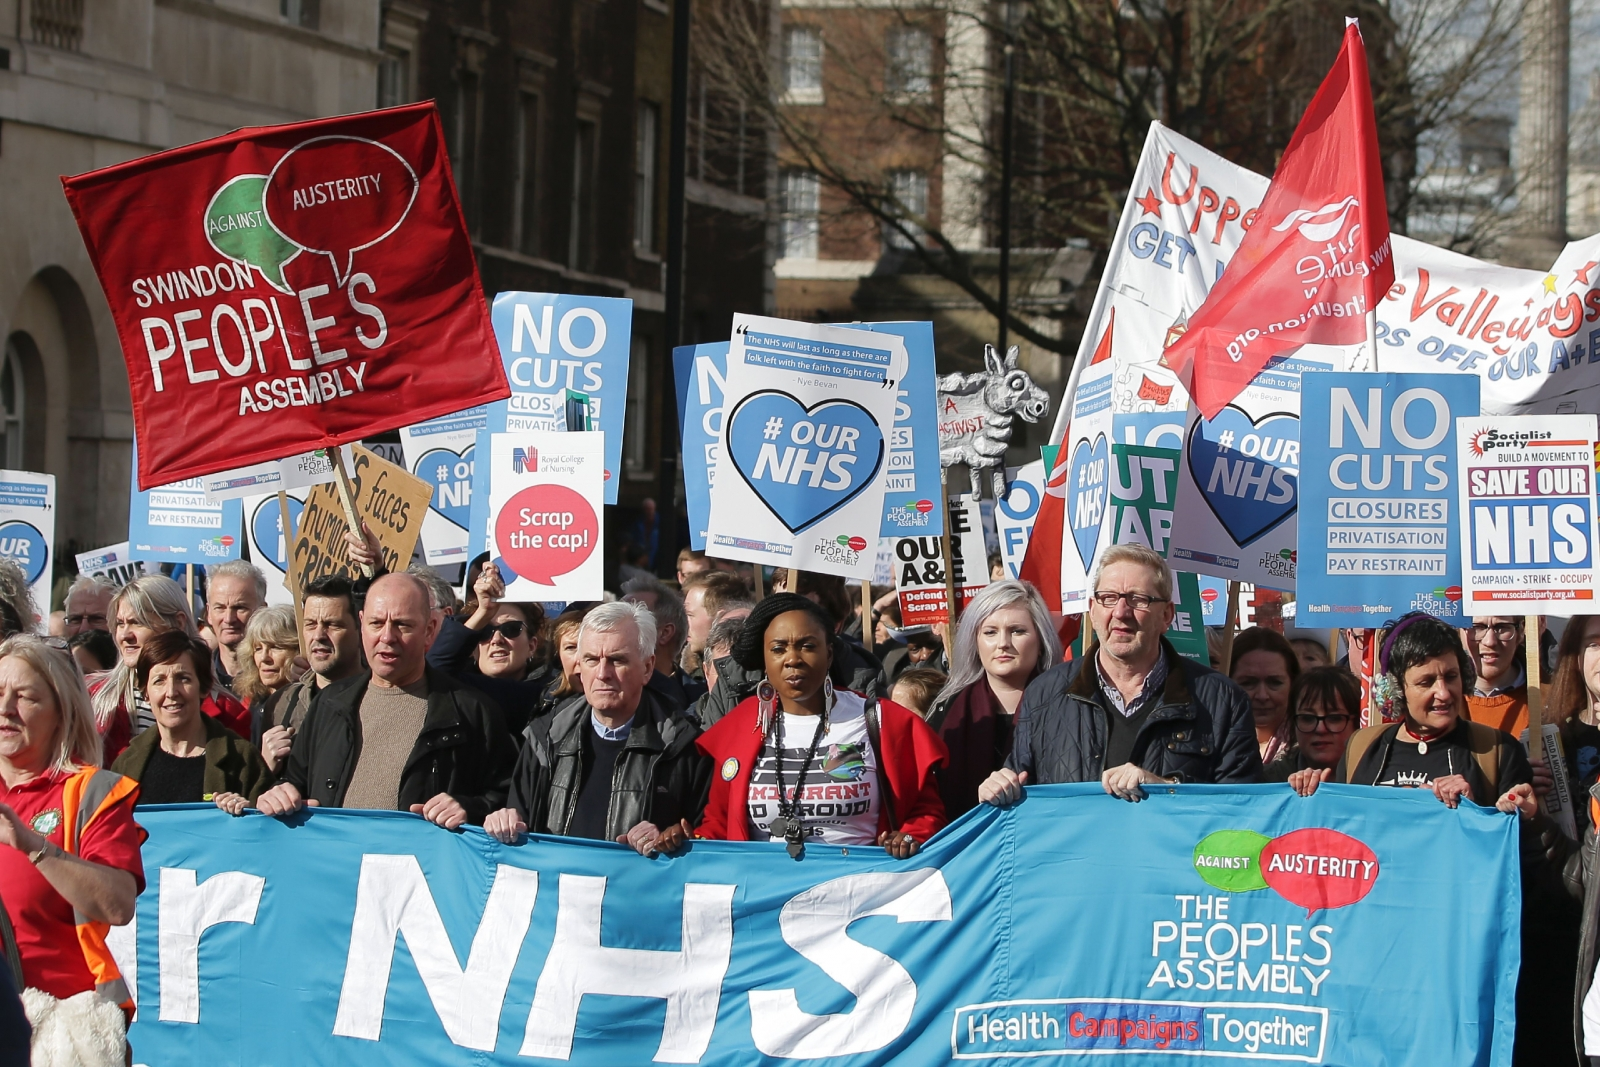 NHS March in London on 4 March 2017